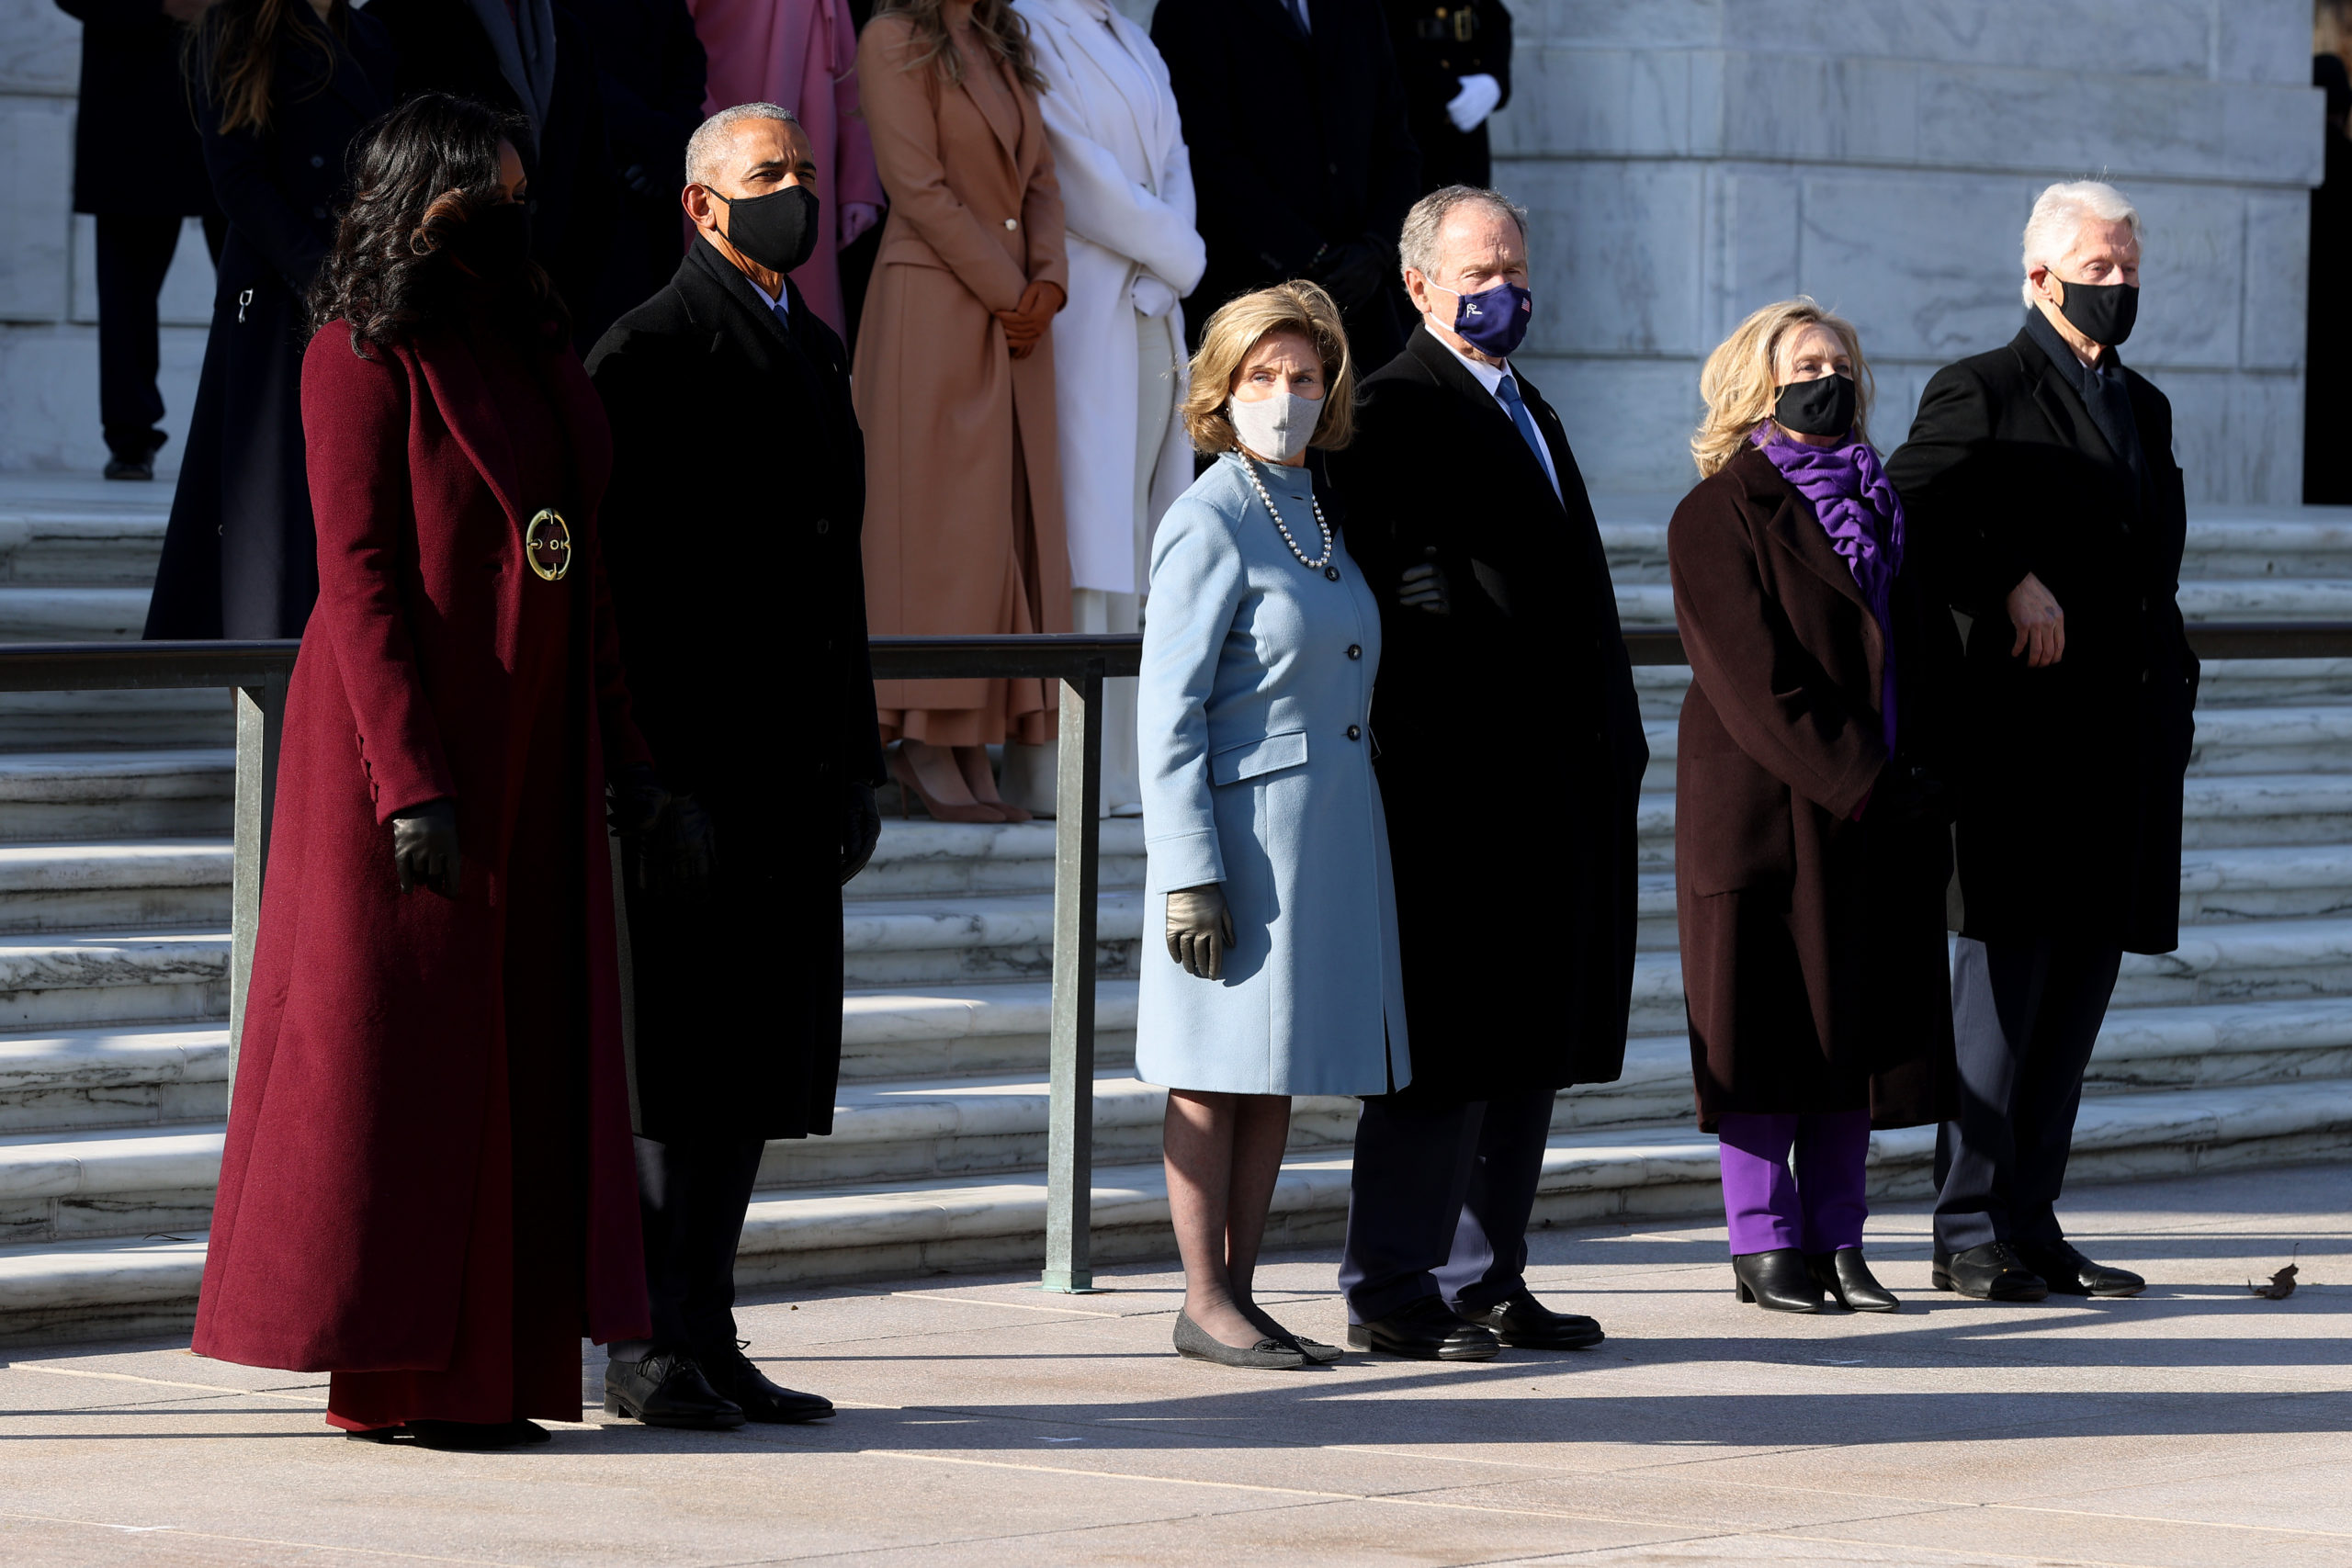 President Barack Obama, Michelle Obama, and President George W. Bush and Laura Bush, and President Bill Clinton and former Secretary of State Hillary Clinton attend a wreath-laying ceremony at the Tomb of the Unknown Soldier after President Joe Biden's Presidential inauguration. (Chip Somodevilla/Getty Images)